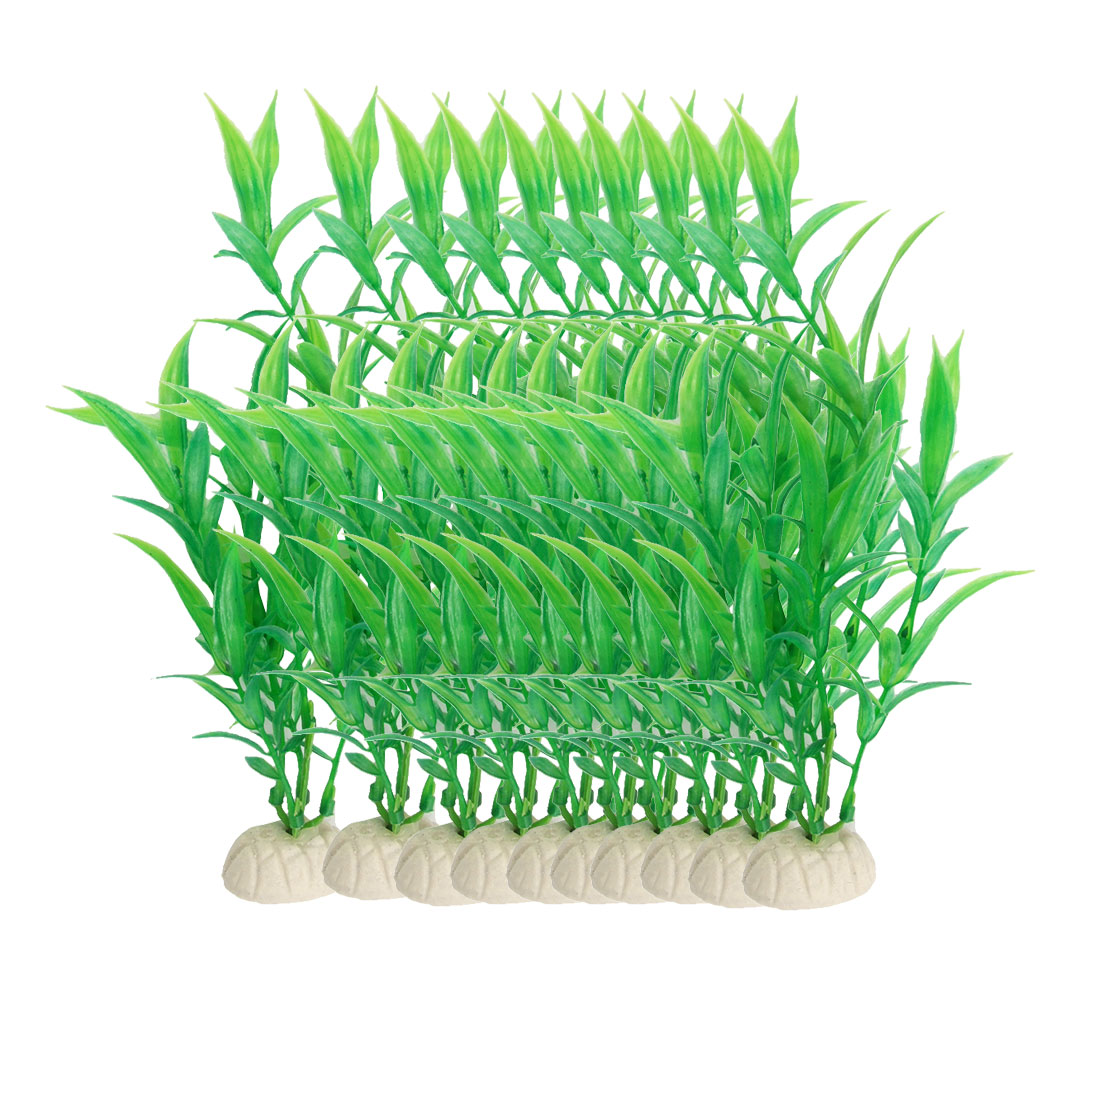 10 Pcs Green Plastic Aquascaping Plant Decor for Aquarium